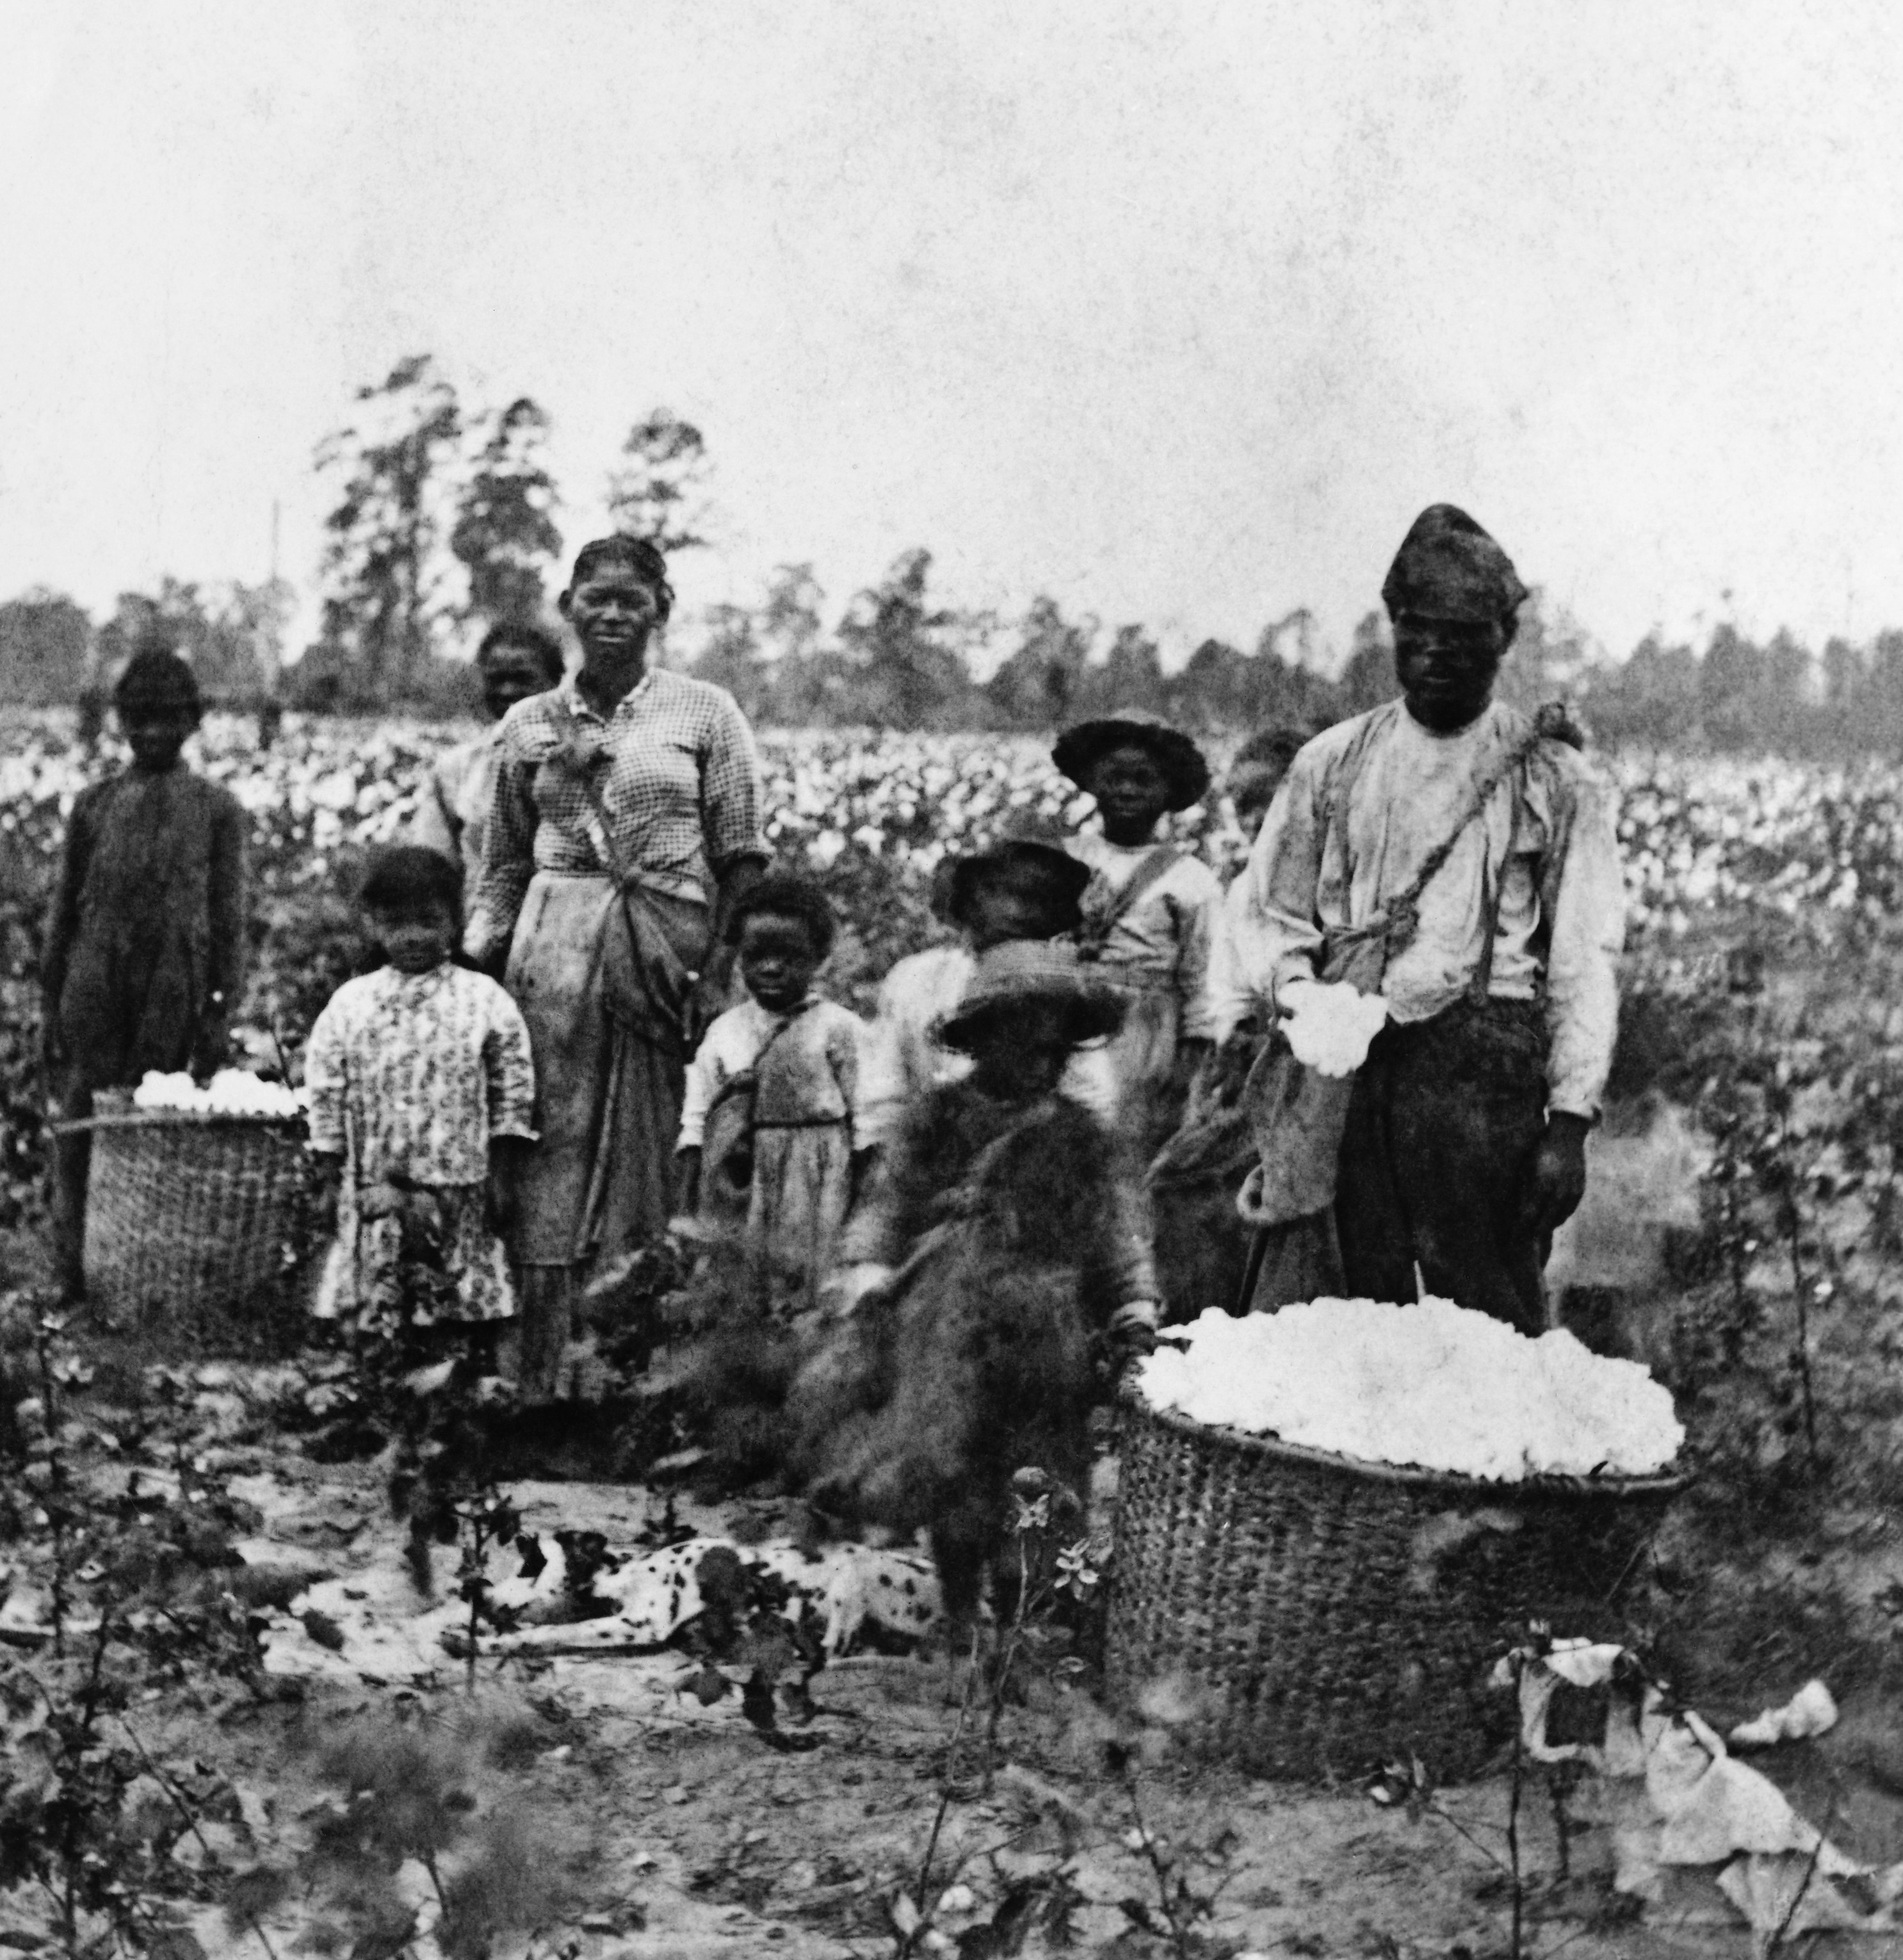 Enslaved cotton pickers, 1860s